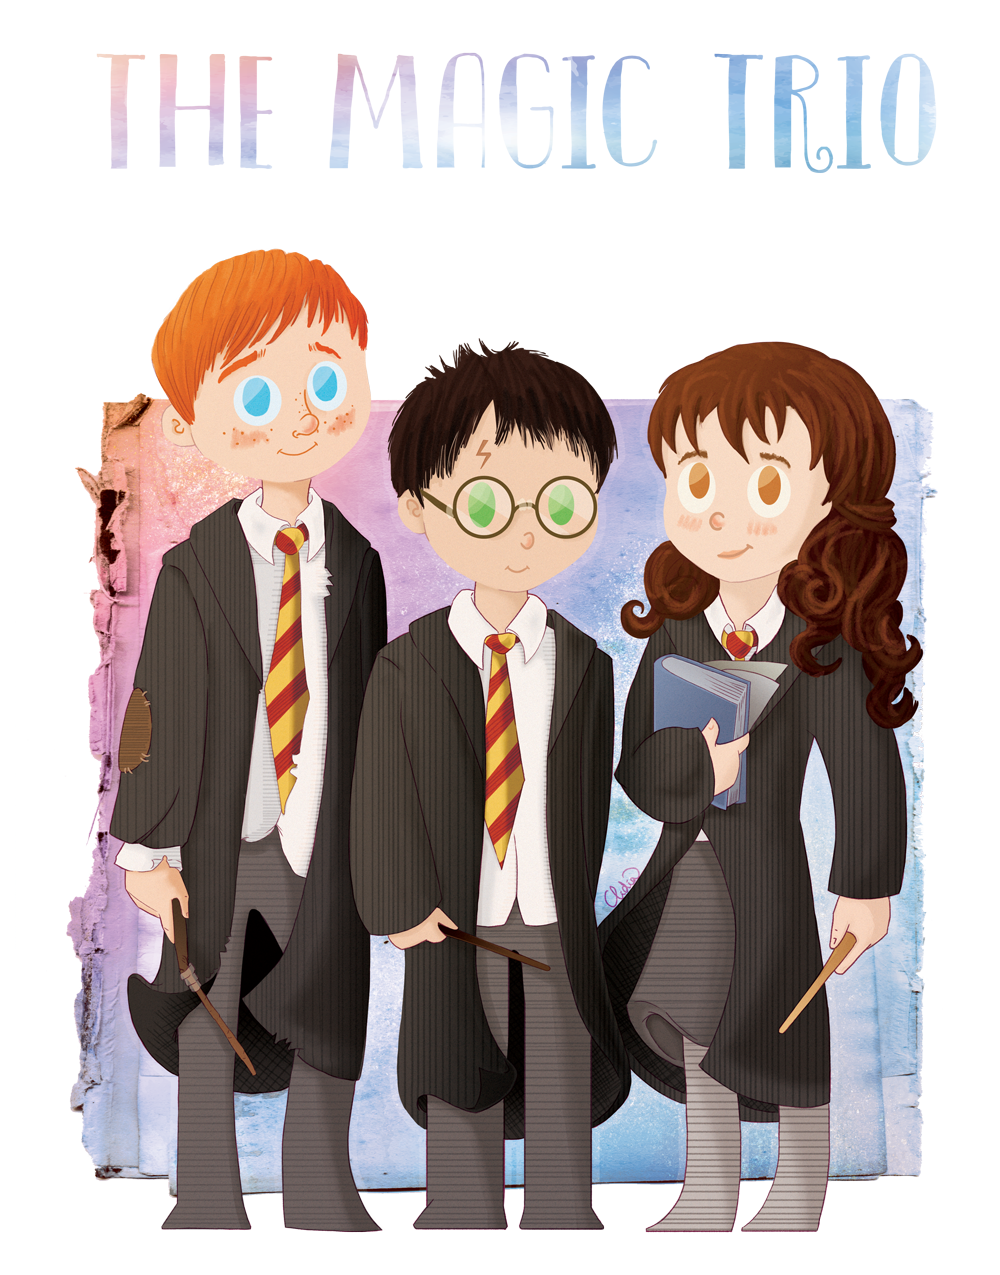 magic trio by Lizeeeee